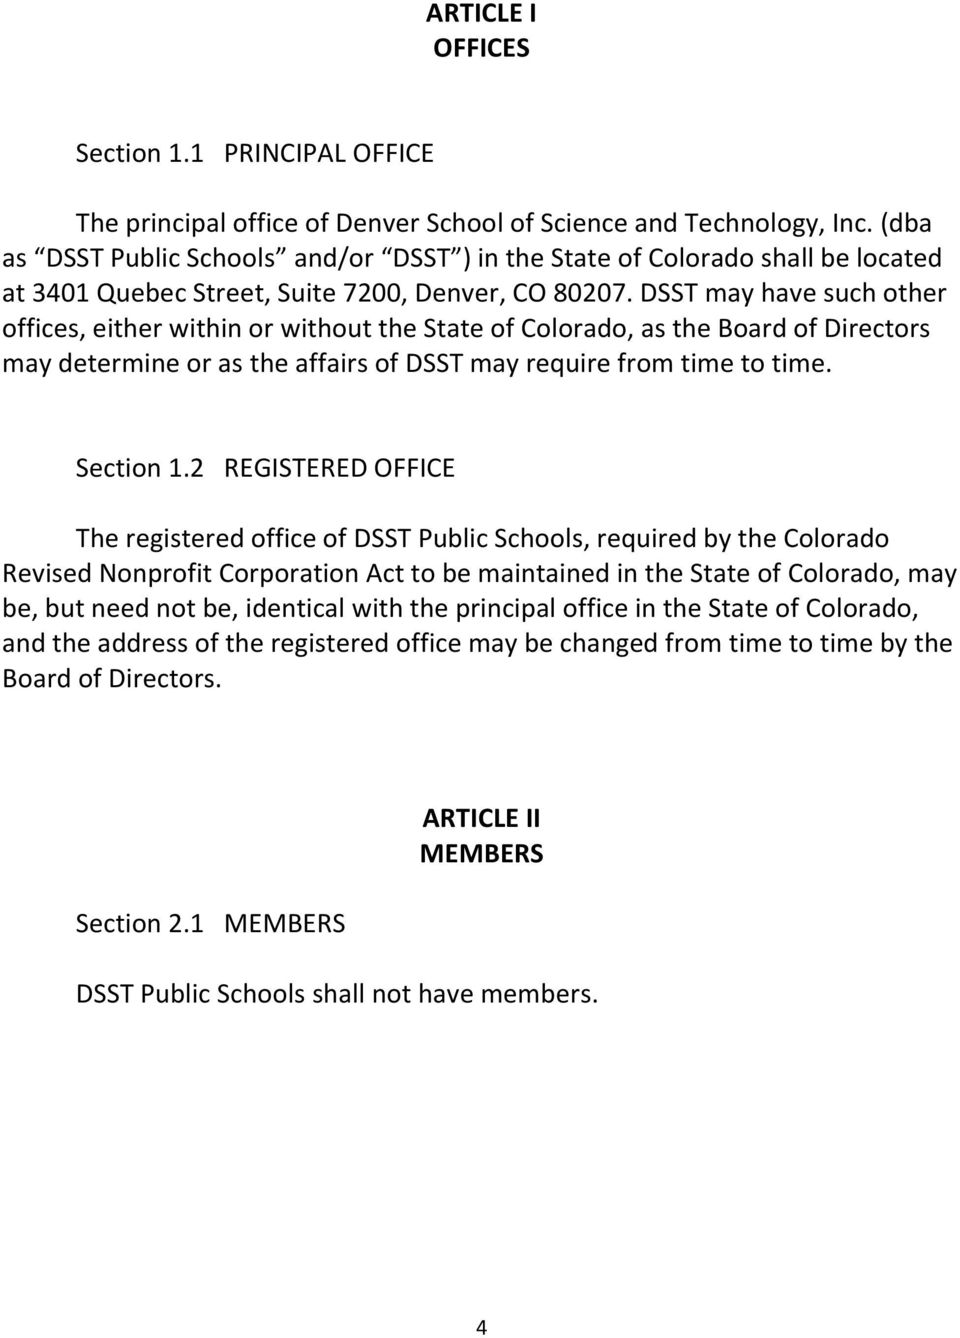 DSST may have such other offices, either within or without the State of Colorado, as the Board of Directors may determine or as the affairs of DSST may require from time to time. Section 1.